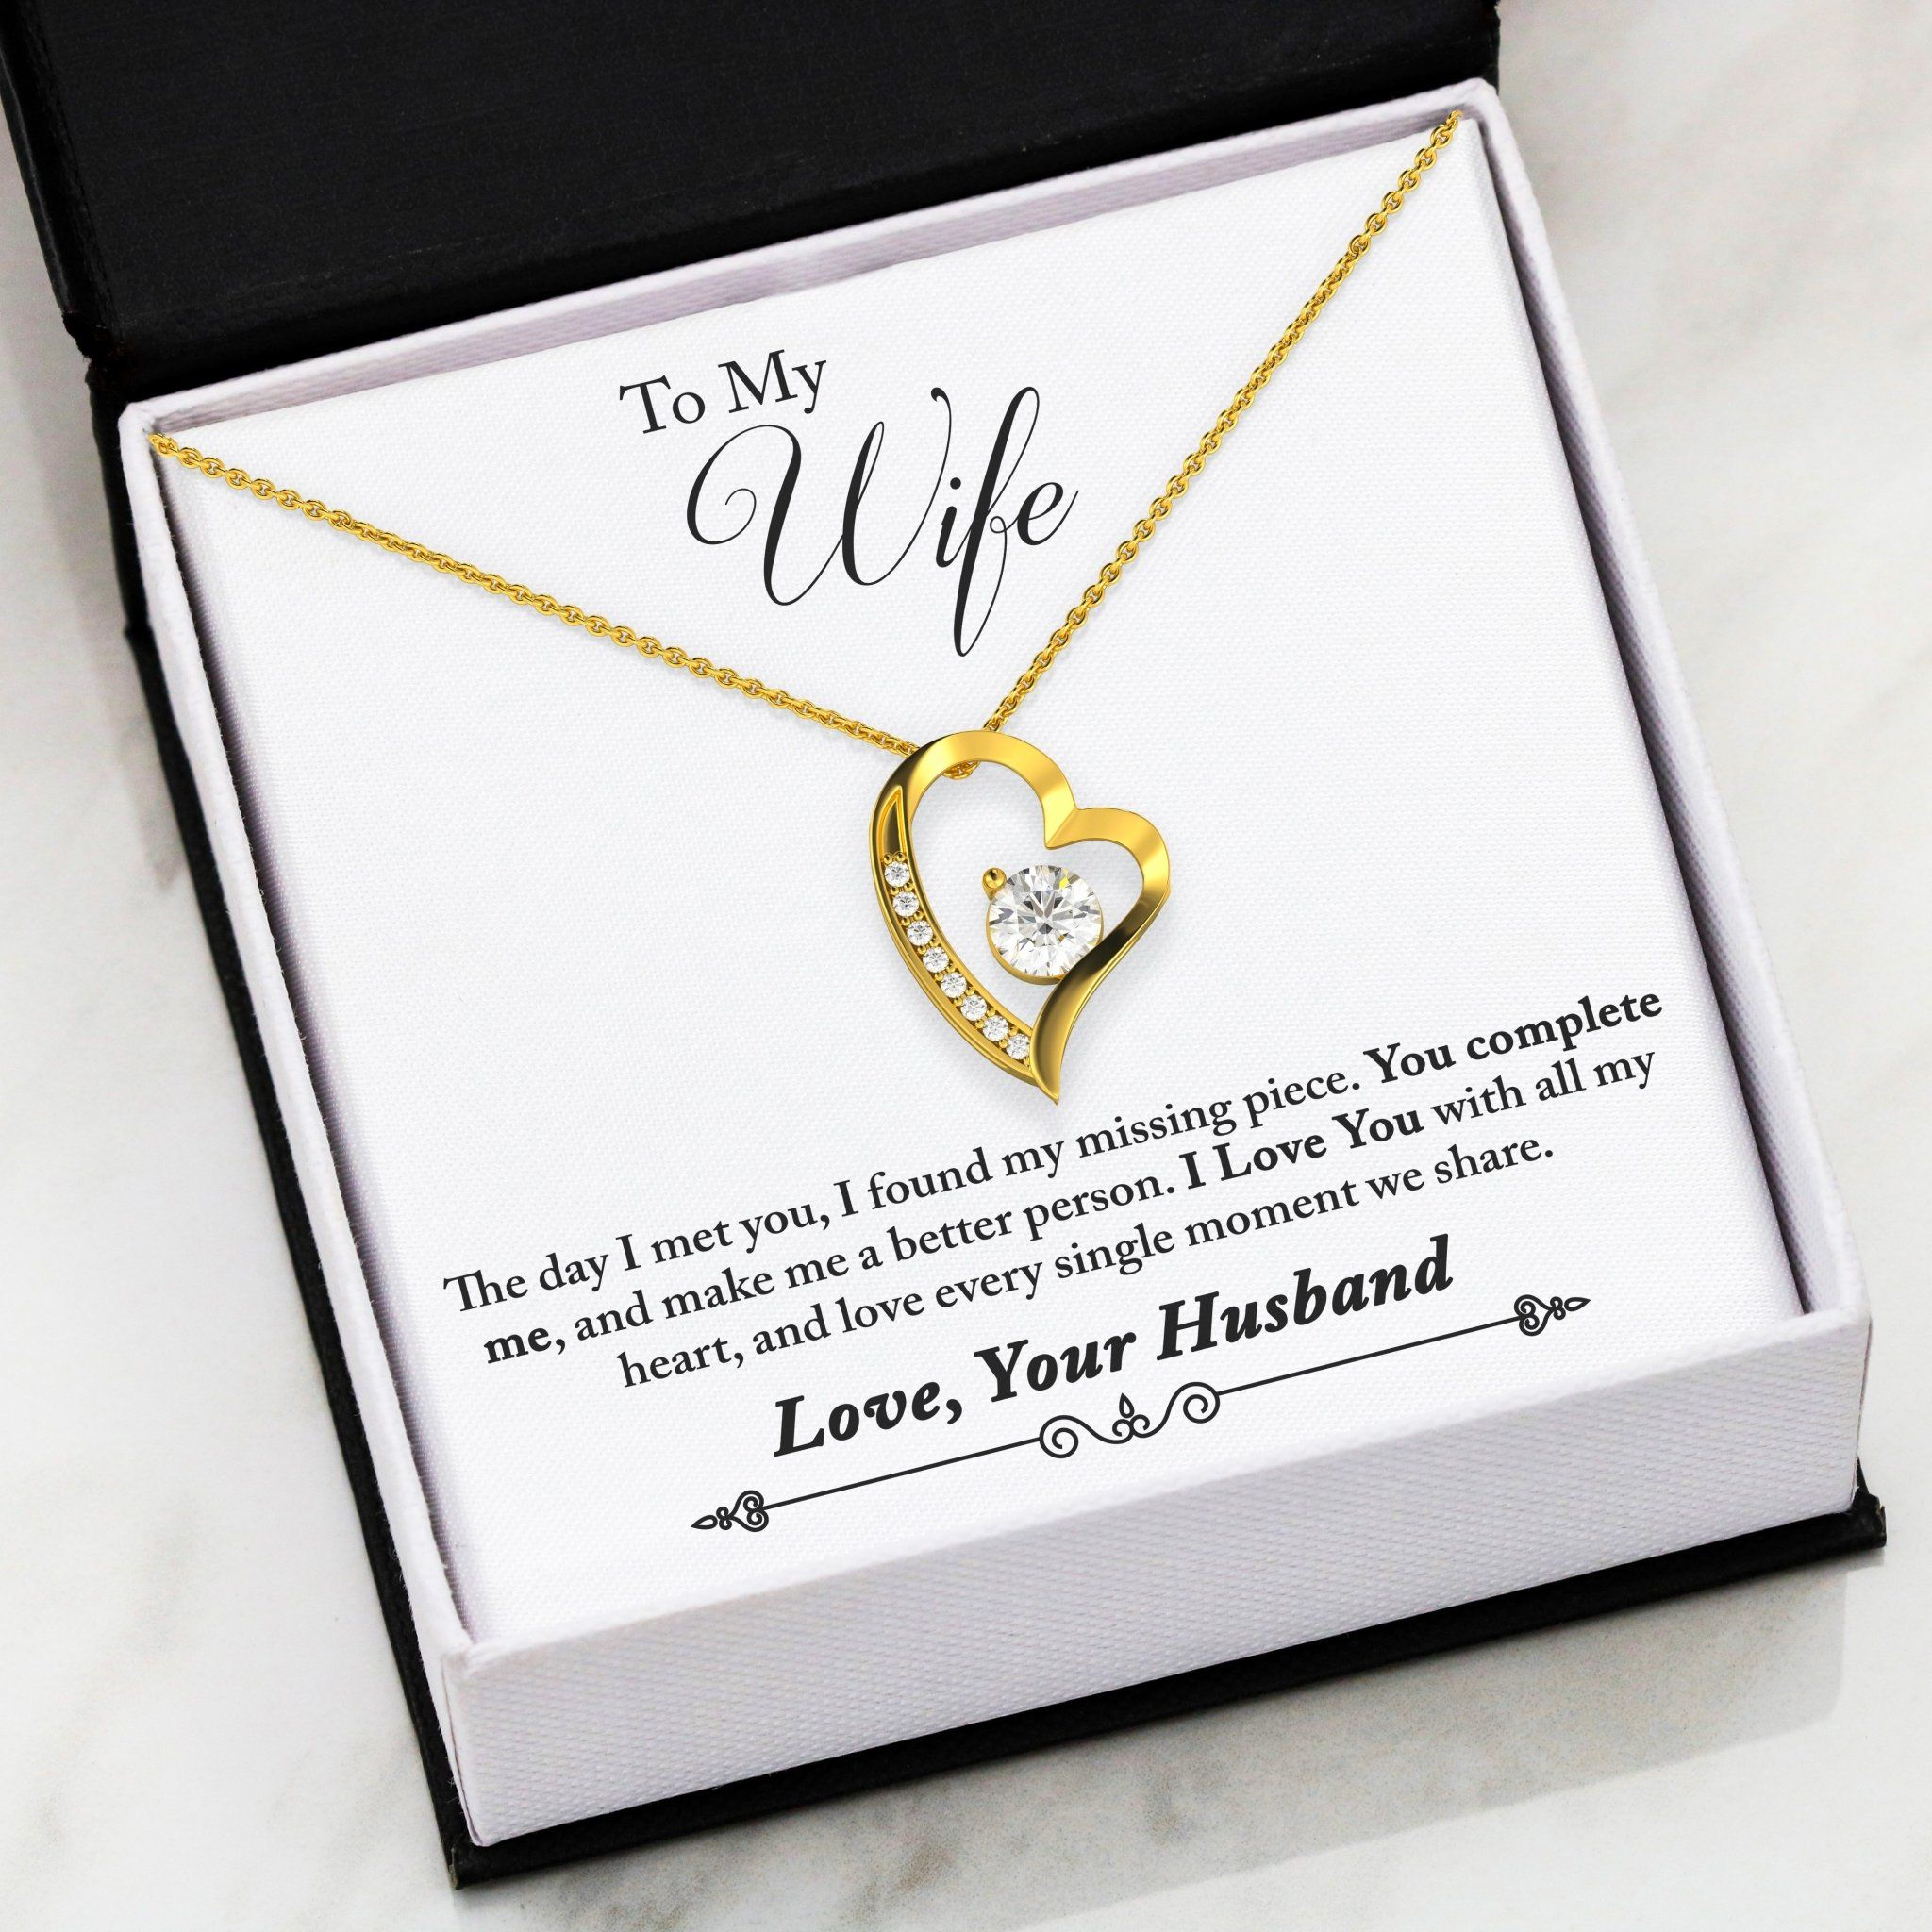 ♥ Valentine day gift for wife: - Thoughtful quote from Husband. To May Wife, The day I met you, I found my missing piece. You com complete me, and make me a better person. I Love You with all my heart, and love every single moment we share. Love, Your Husband.♥ Birthday gift for wife: - High polished heart pendant surrounding a flawless 6.5mm Cubic Zirconia, embellished with smaller Cubic Zirconia adding sparkle and shine. The pendant is available in 14k White Gold finish or 18k Yellow Gold fini